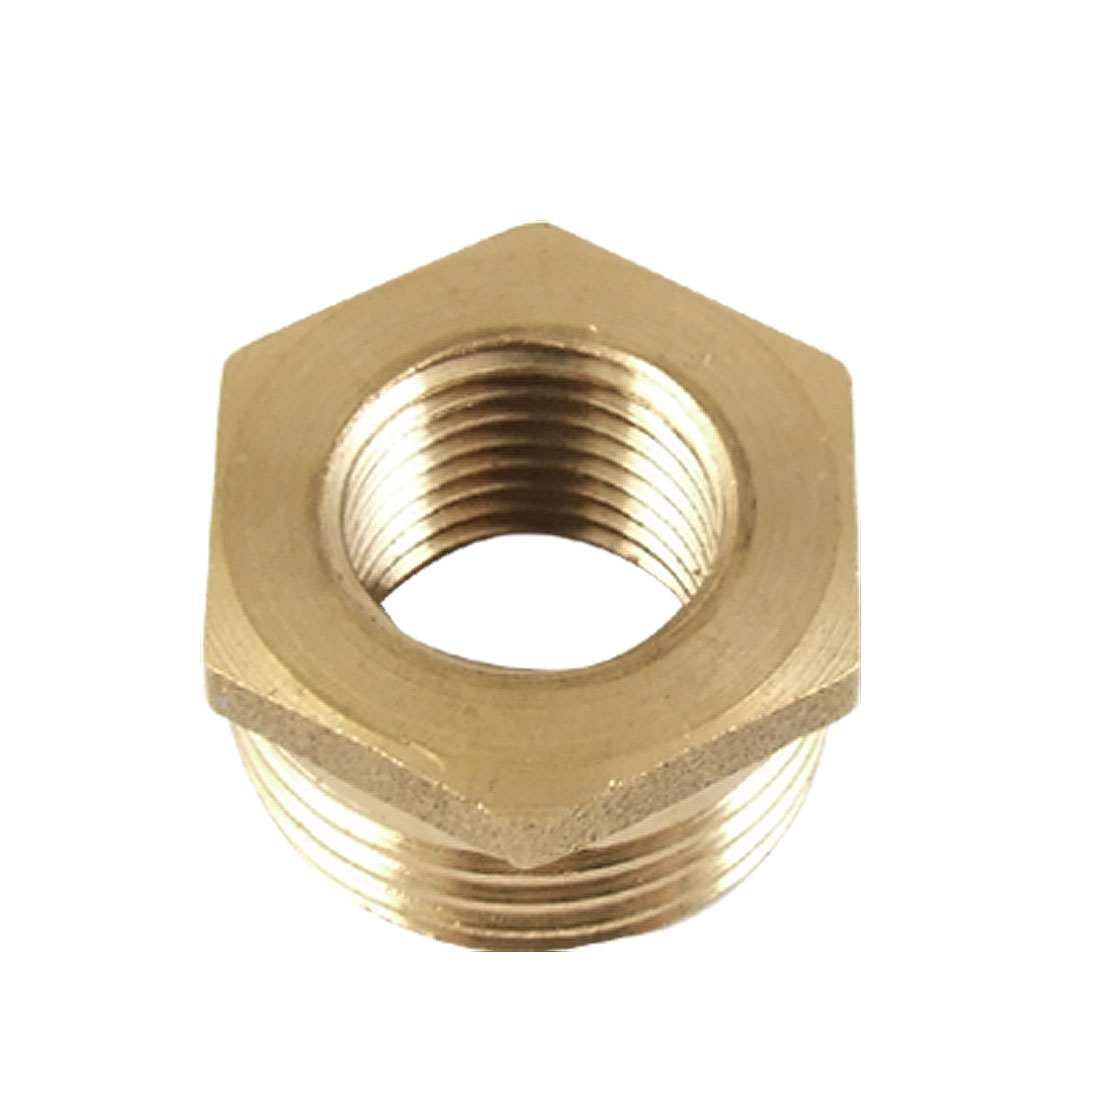 11.9 x 20.5mm Hex Brass Reducing Bushing Pipe Fitting